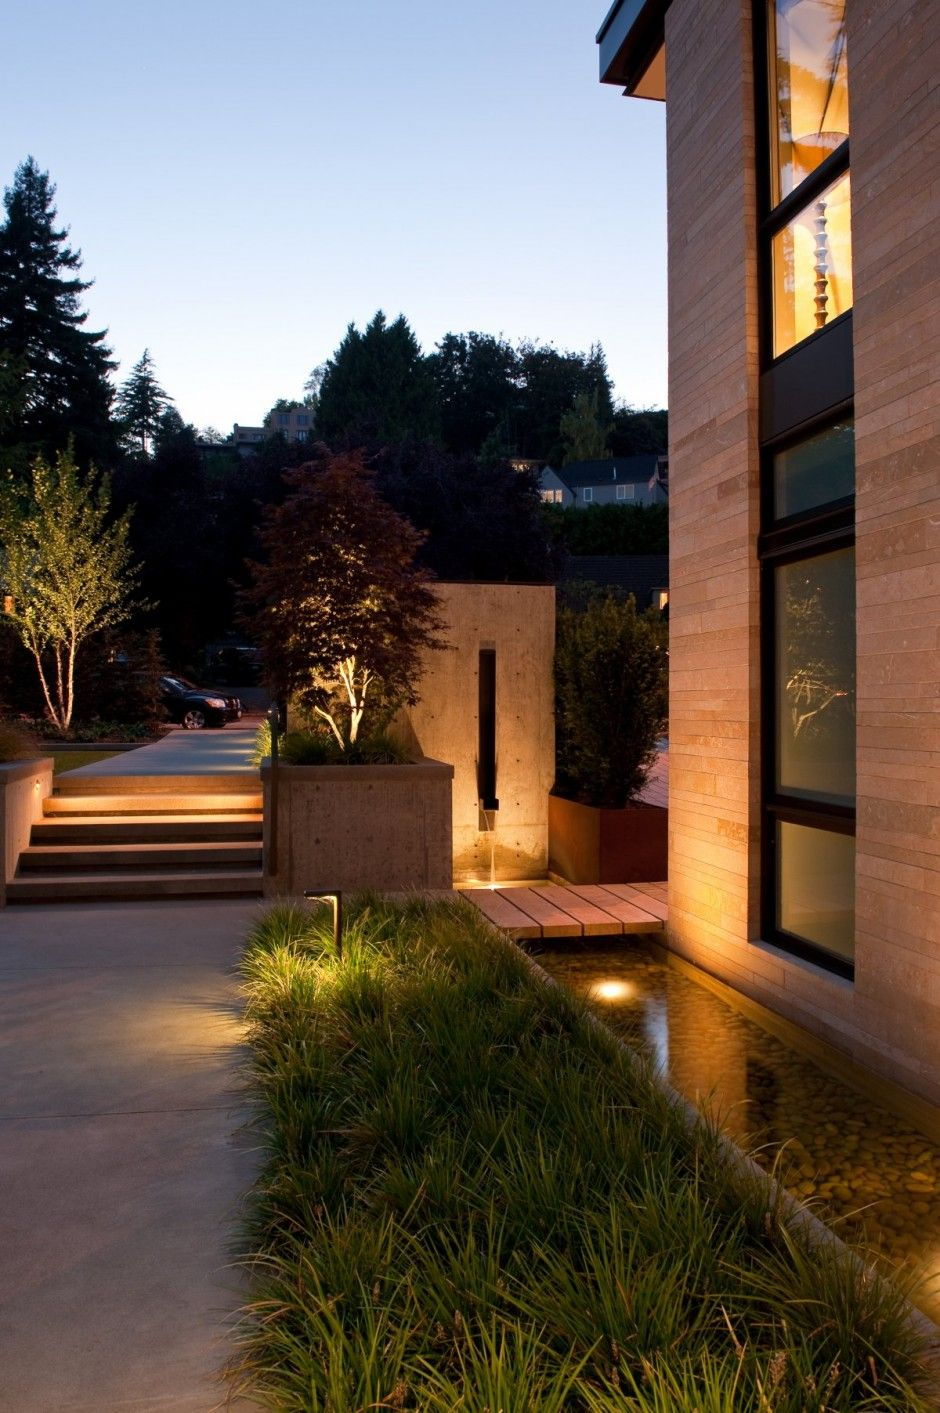 Washington park hilltop residence by stuart silk architects seattle washington park hilltop residence by stuart silk architects seattle wa aloadofball Image collections